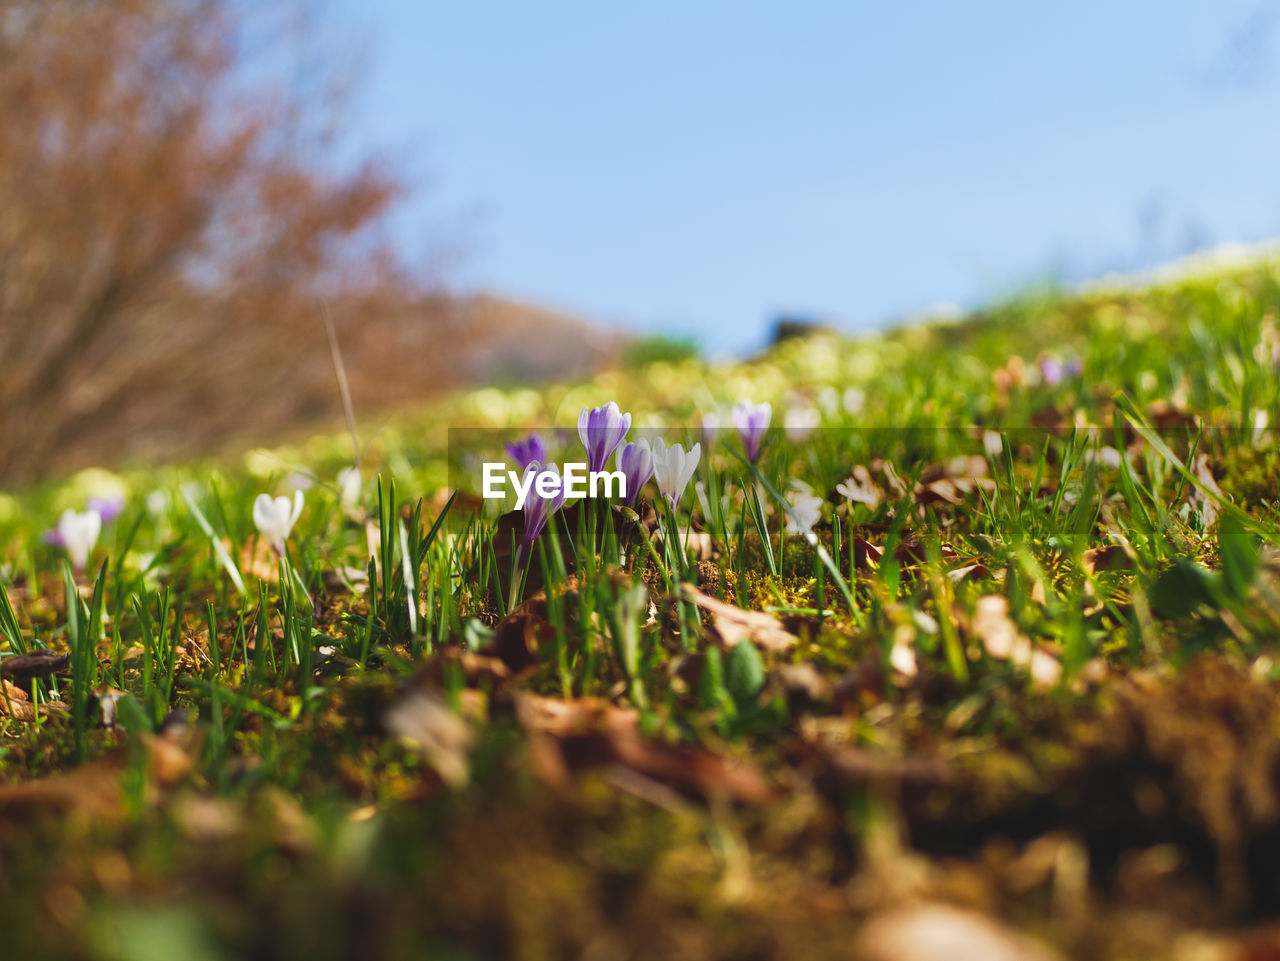 selective focus, plant, field, growth, land, nature, beauty in nature, grass, flower, green color, day, flowering plant, vulnerability, tranquility, surface level, close-up, fragility, no people, freshness, sky, outdoors